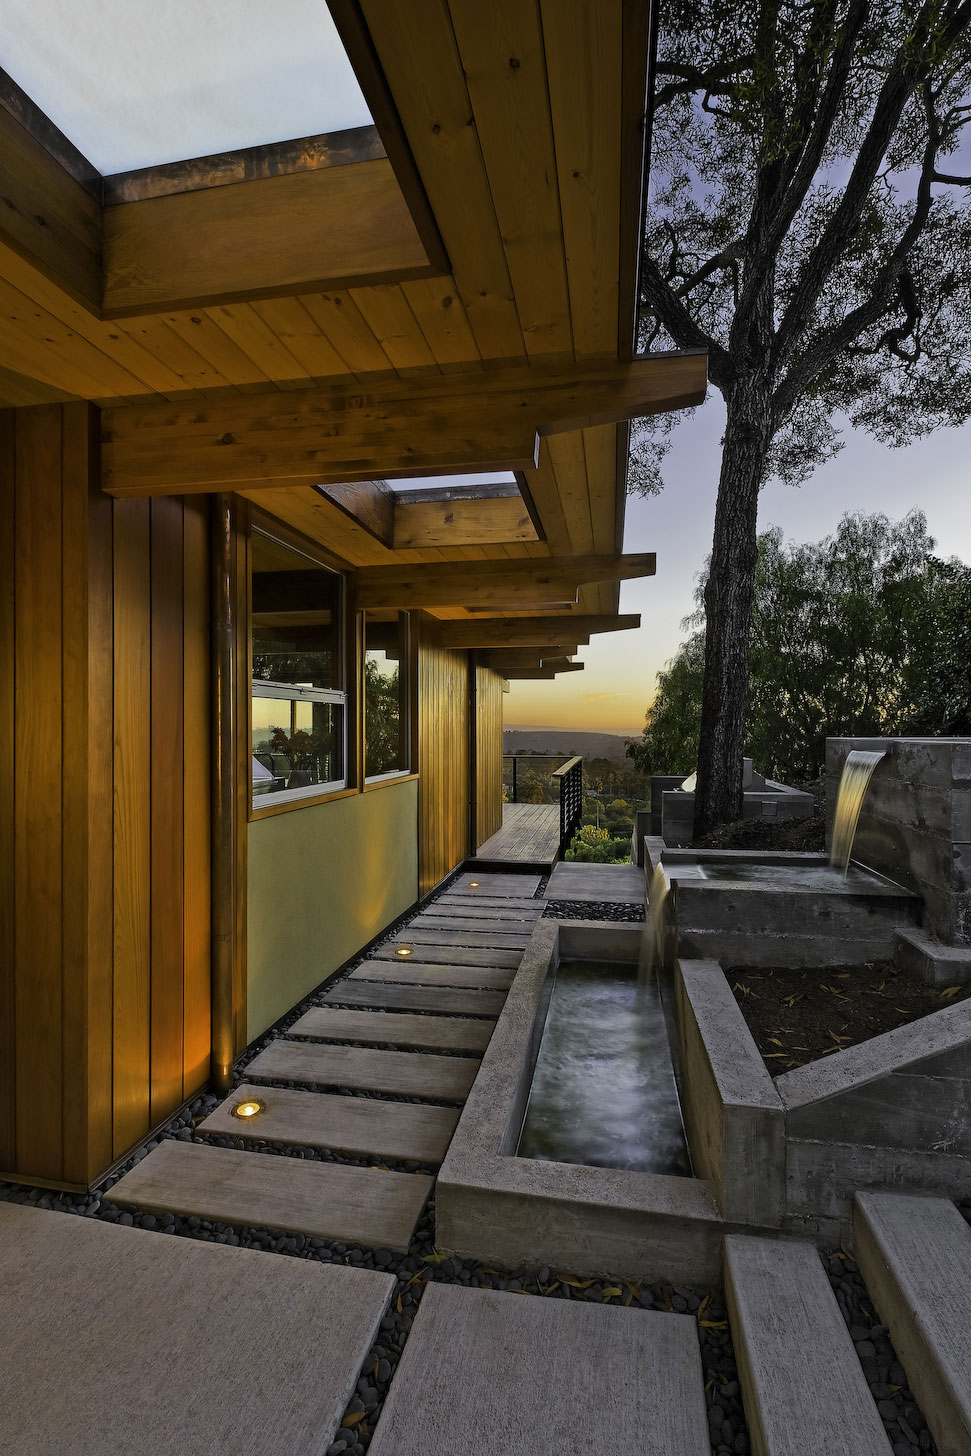 Water Feature, Waterfalls, Mid-Century Modern Home in Santa Barbara, California